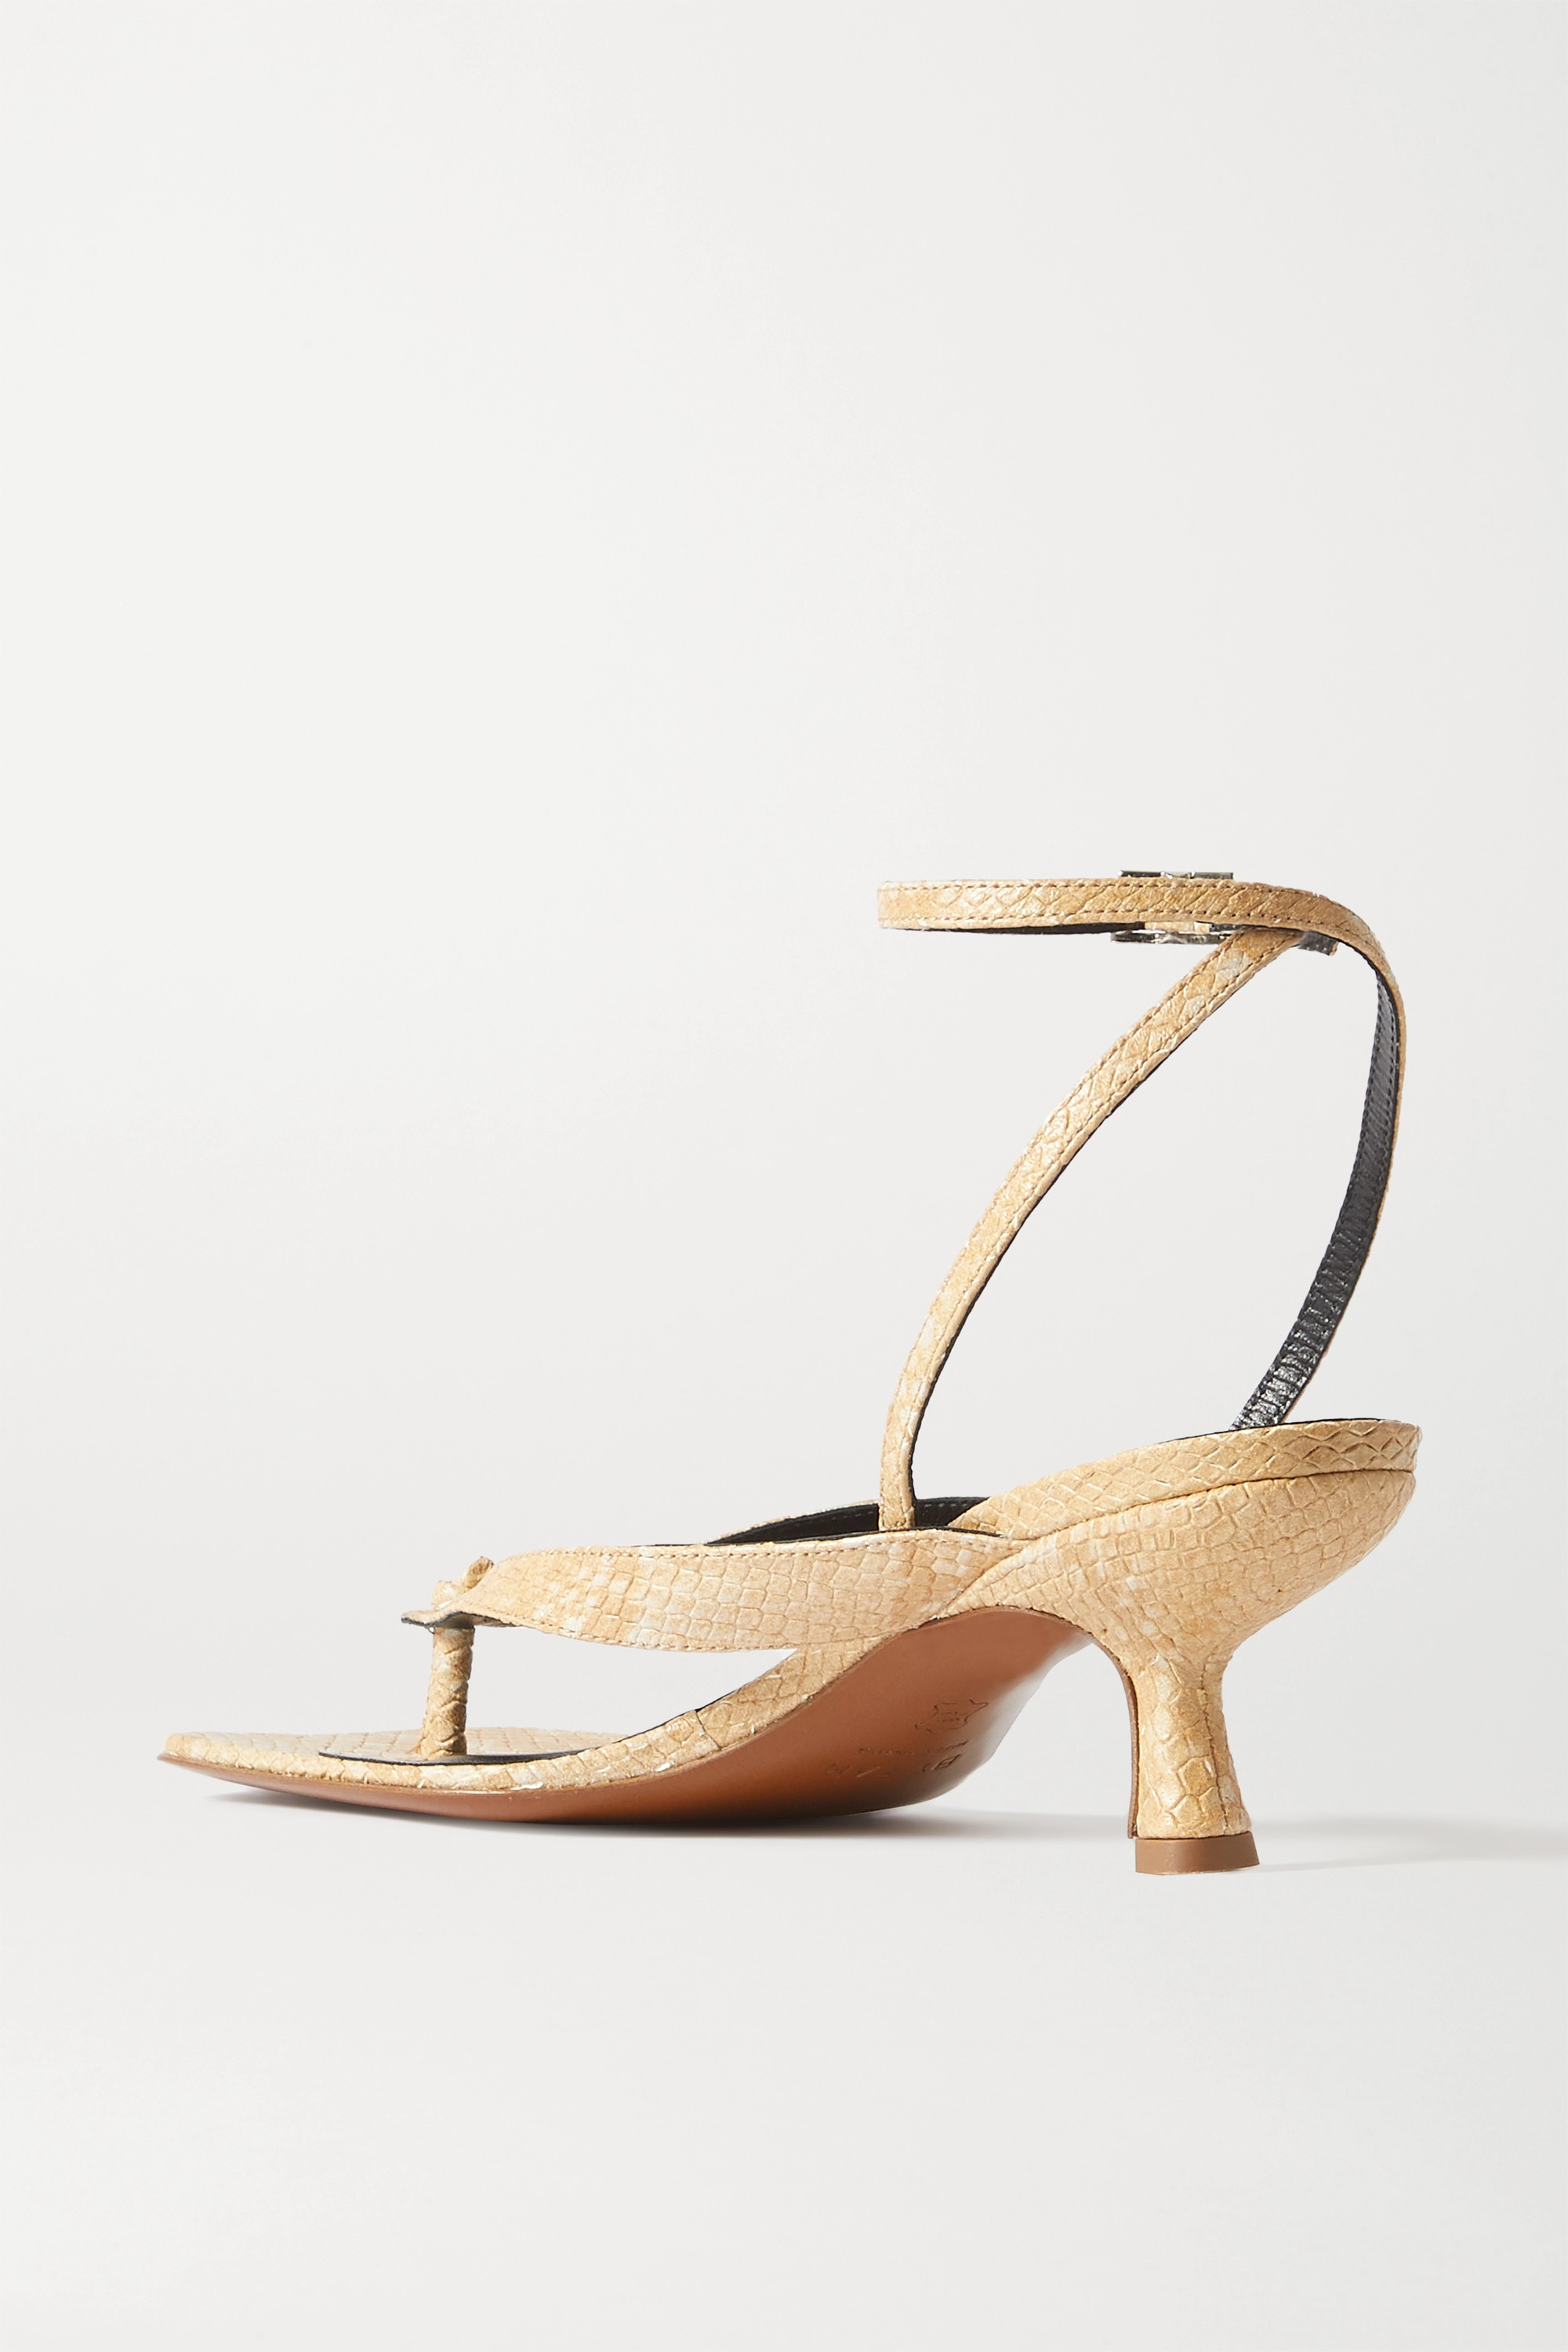 BY FAR Mindi snake-effect leather sandals